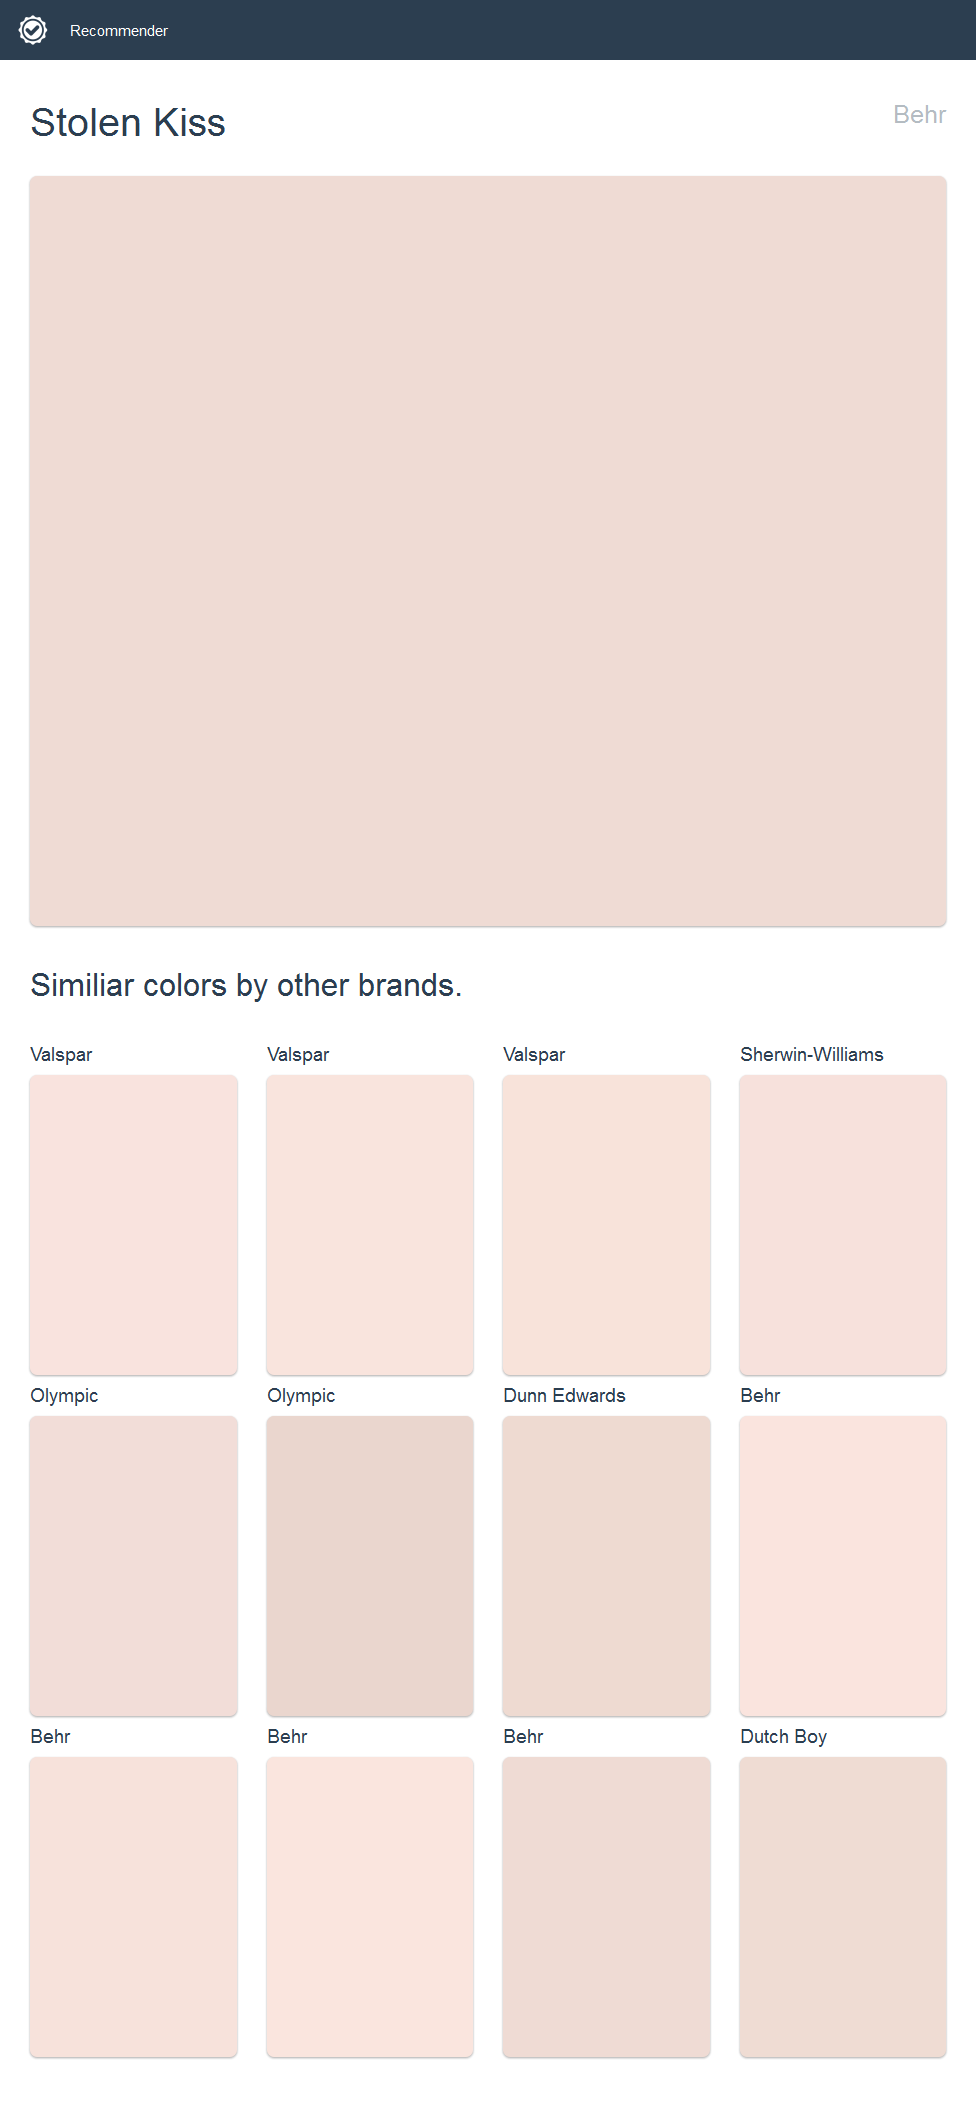 Stolen Kiss, Behr. Click The Image To See Similiar Colors By Other Brands.